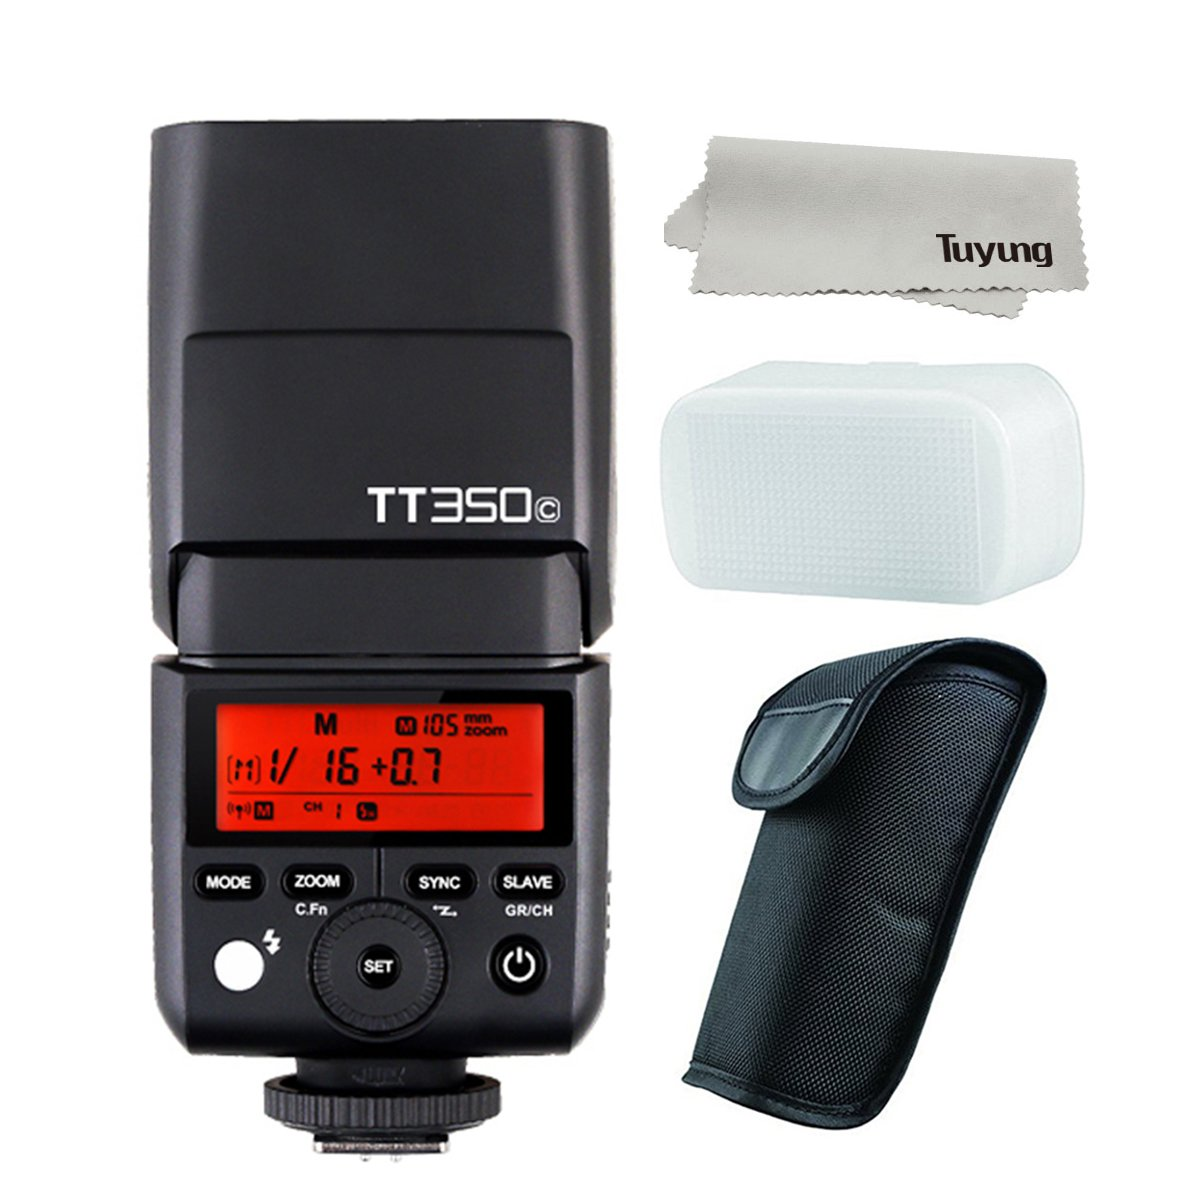 GODOX Mini TT350C TTL HSS max 1/8000s 2.4G Wireless X System Flash for Canon Cameras,5D Mark III 80D 7D 760D 60D 600D 30D 100D 1100D Digital X etc Cameras